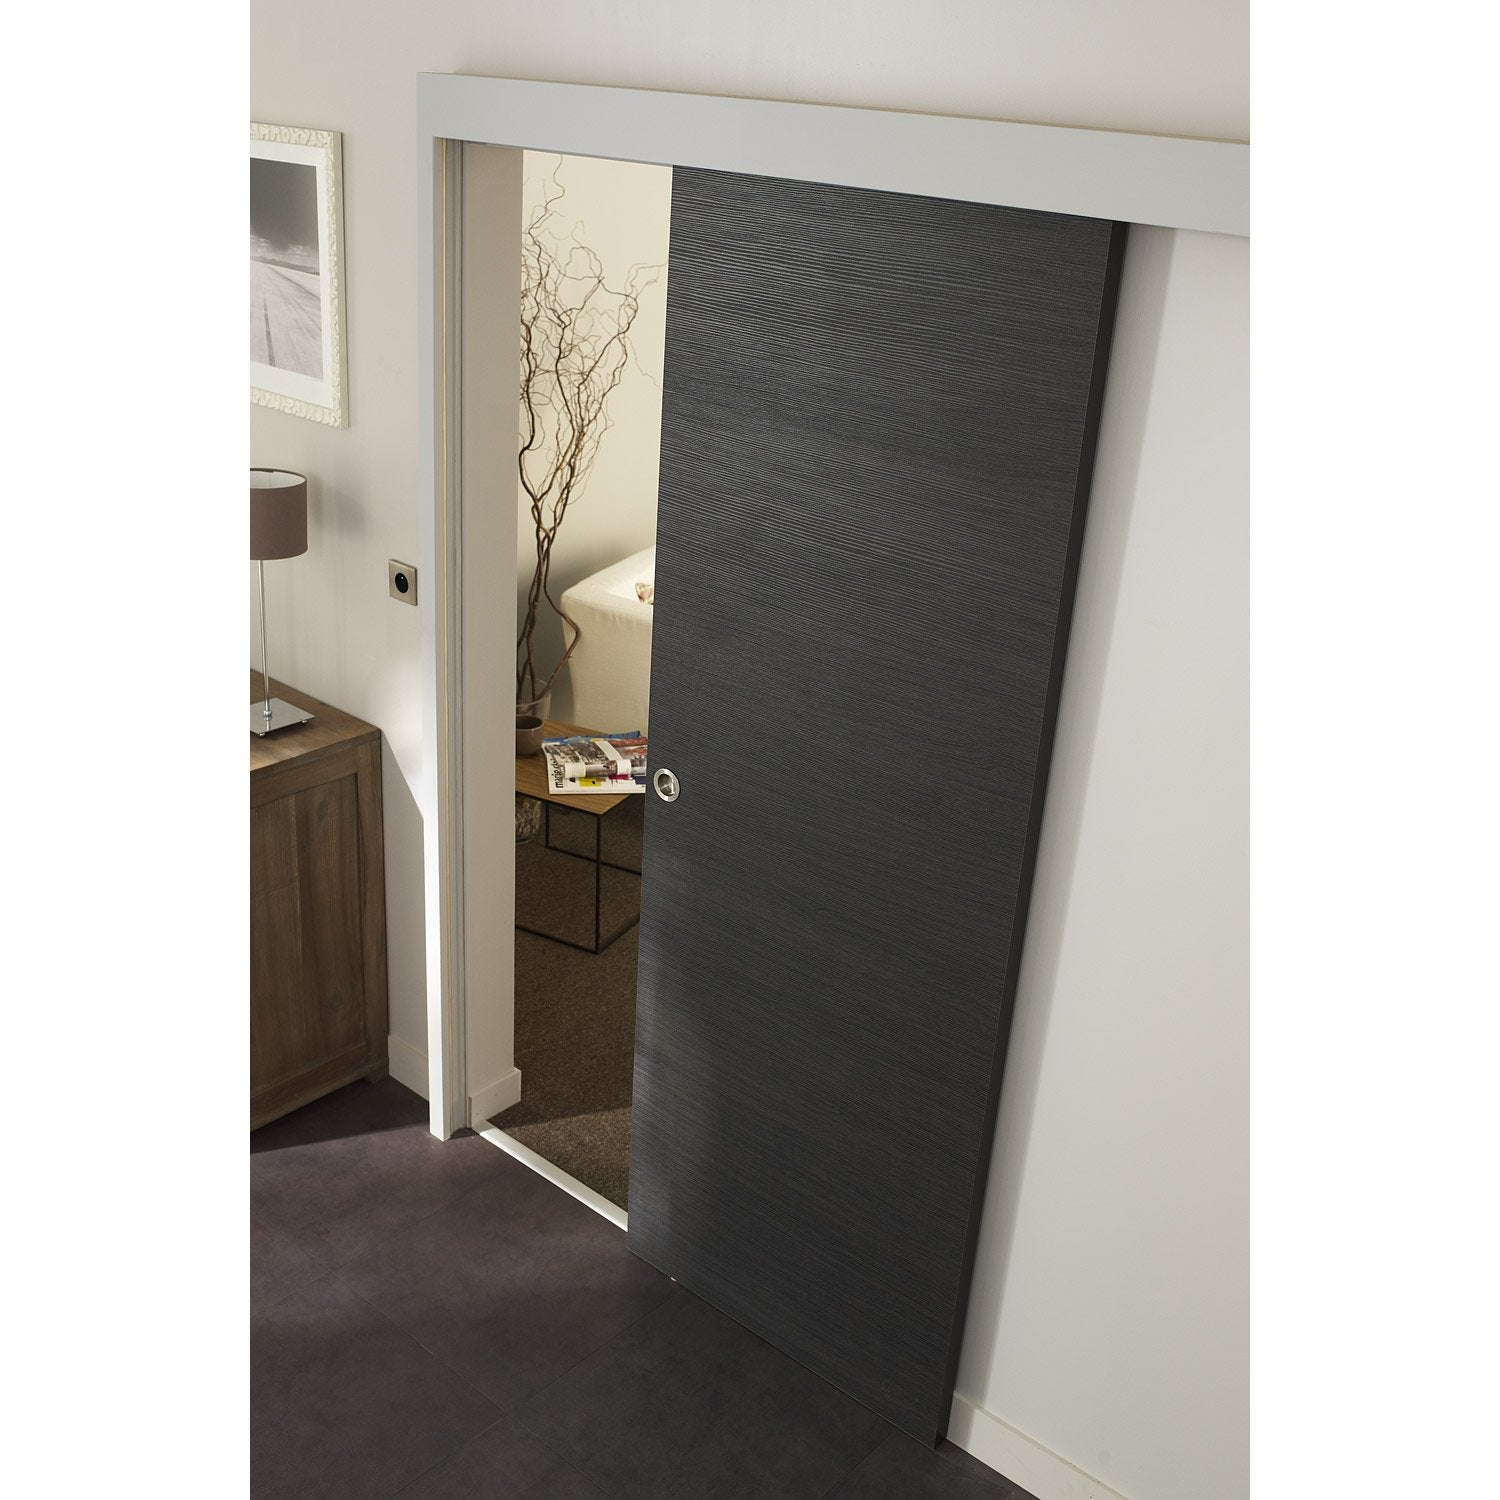 Ensemble porte coulissante londres mdf rev tu avec le rail - Habillage porte interieur leroy merlin ...